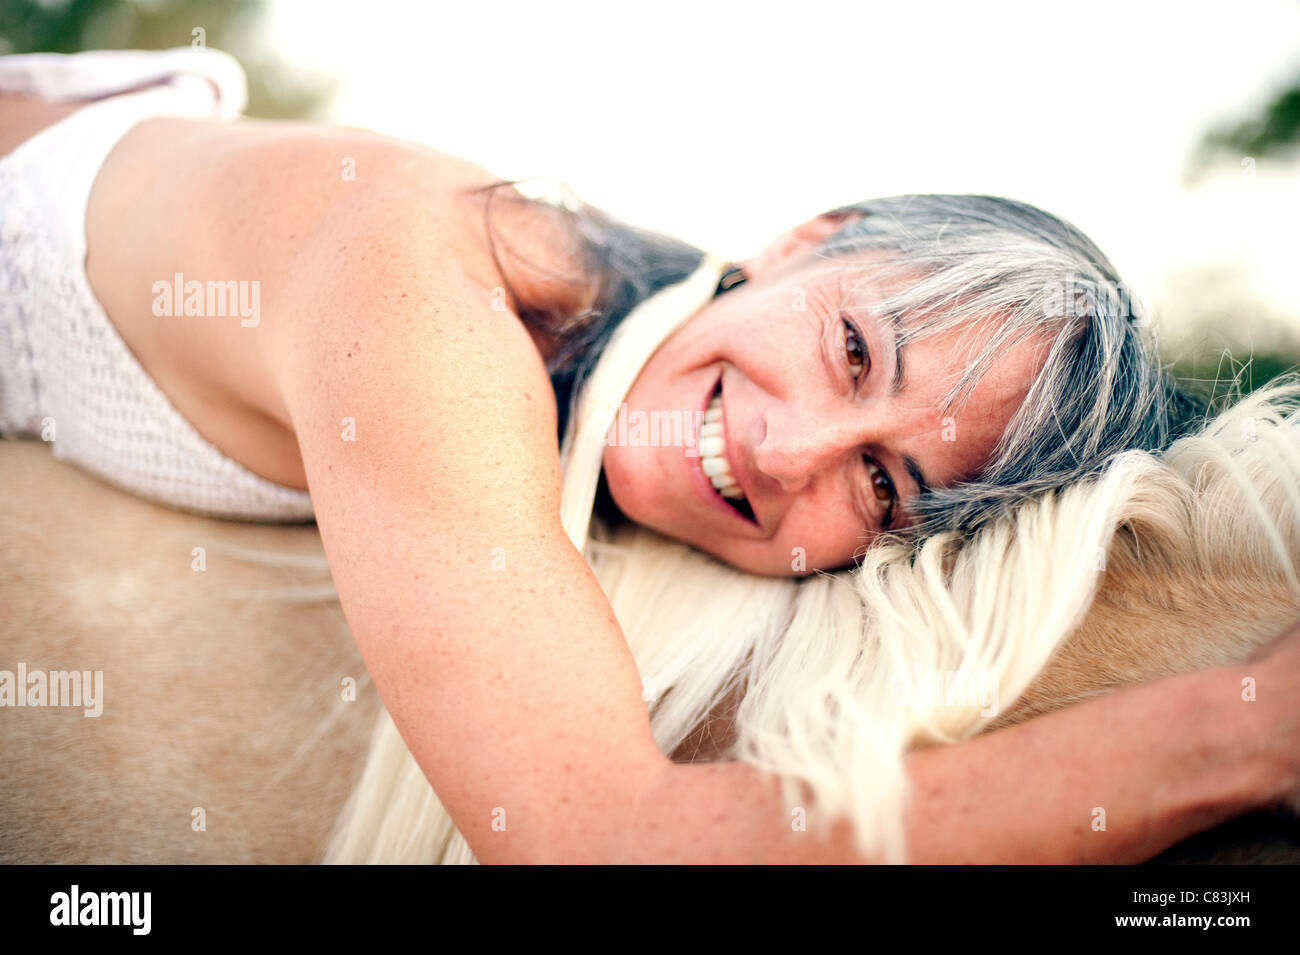 Close up portrait of a woman laying her head on a horses neck. - Stock Image